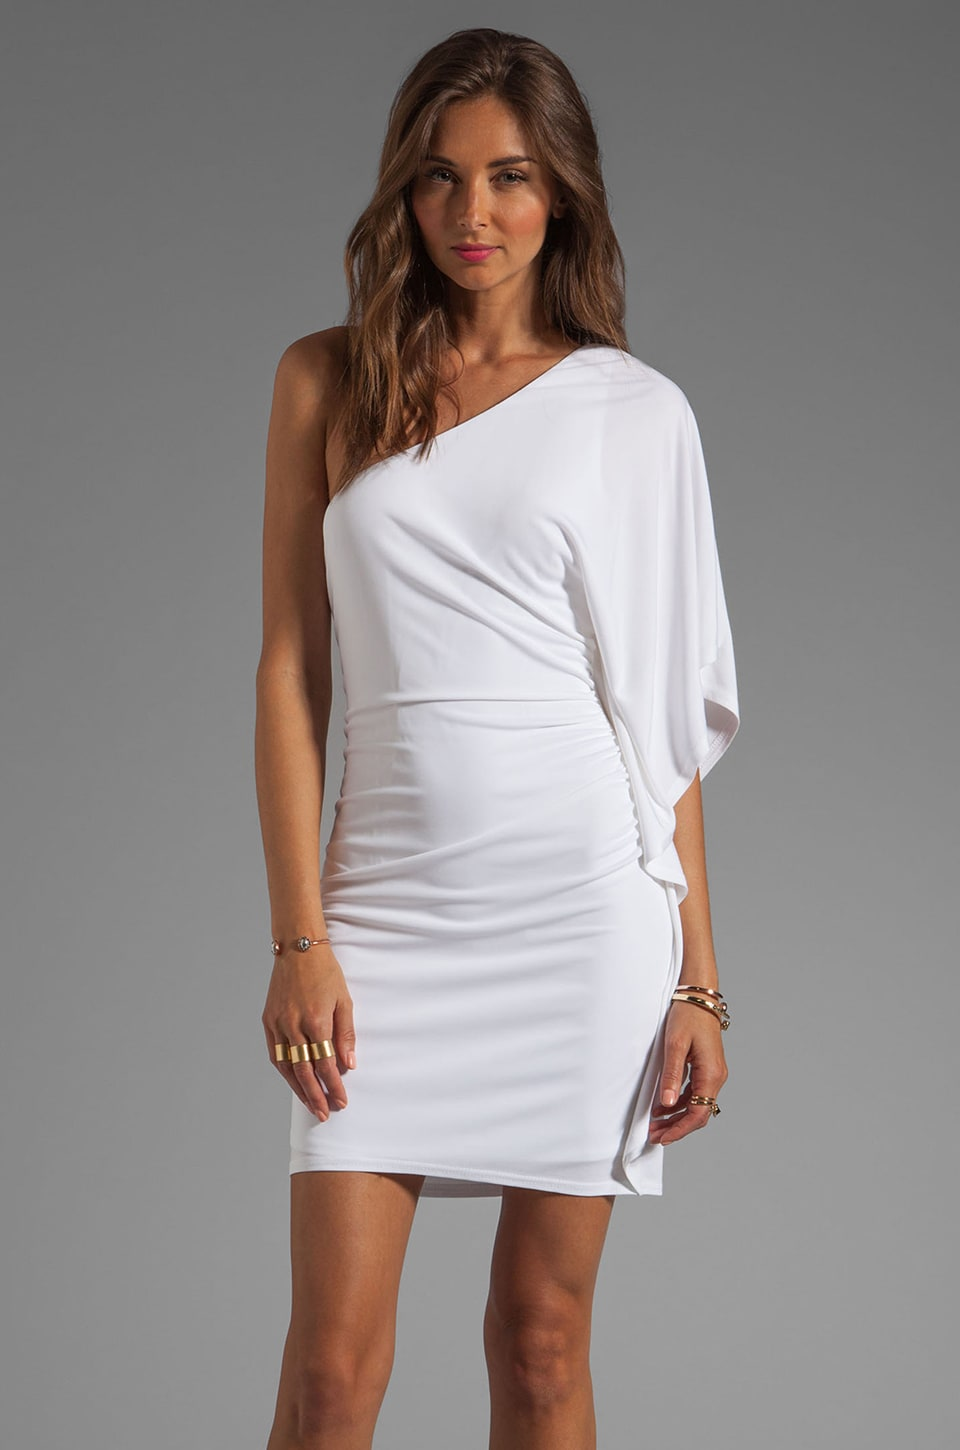 Trina Turk Cosmic Dress in White Wash